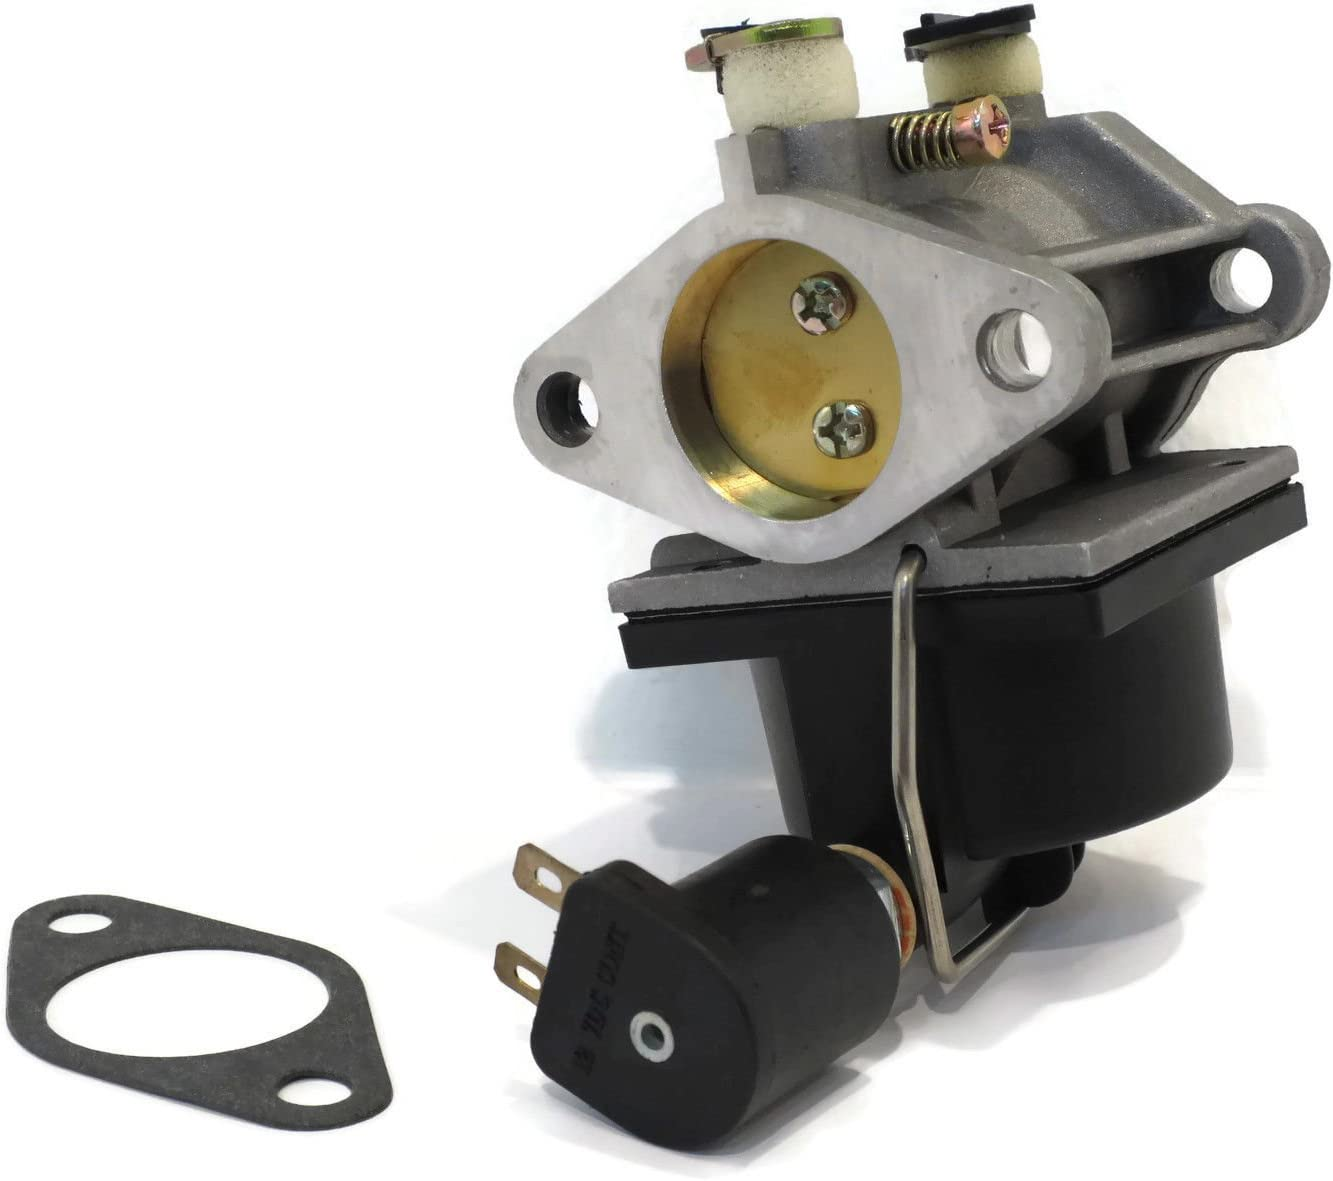 HIFROM(TM) Replace New Carburetor Carb w/Fuel Solenoid & Gasket for Tecumseh OHV14 OHV15 OHV16 OHV17 OV495EA 640330 640034 640072A 640159